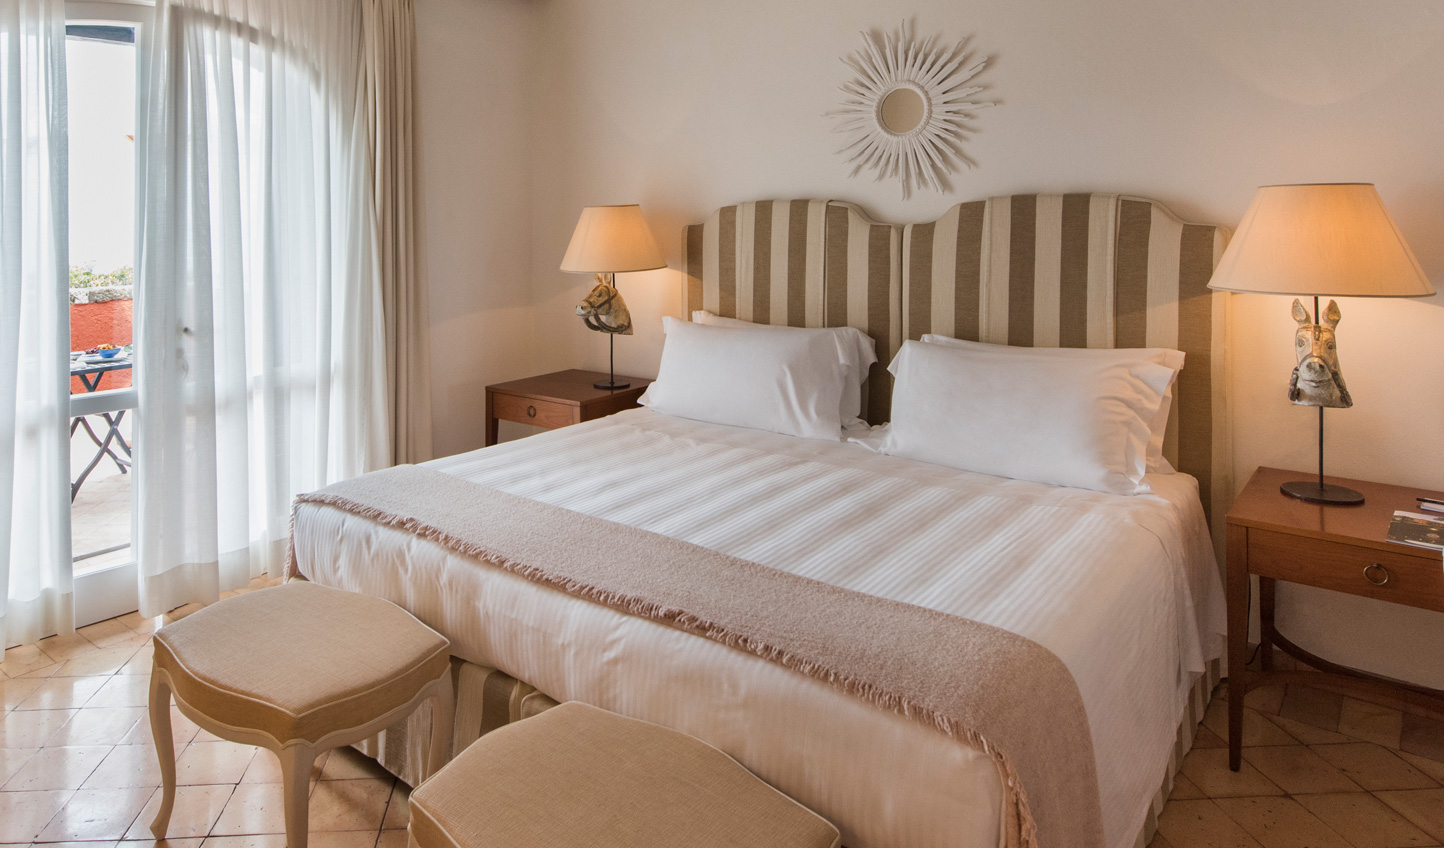 Tradtional Tuscan style creates a homely atmosphere